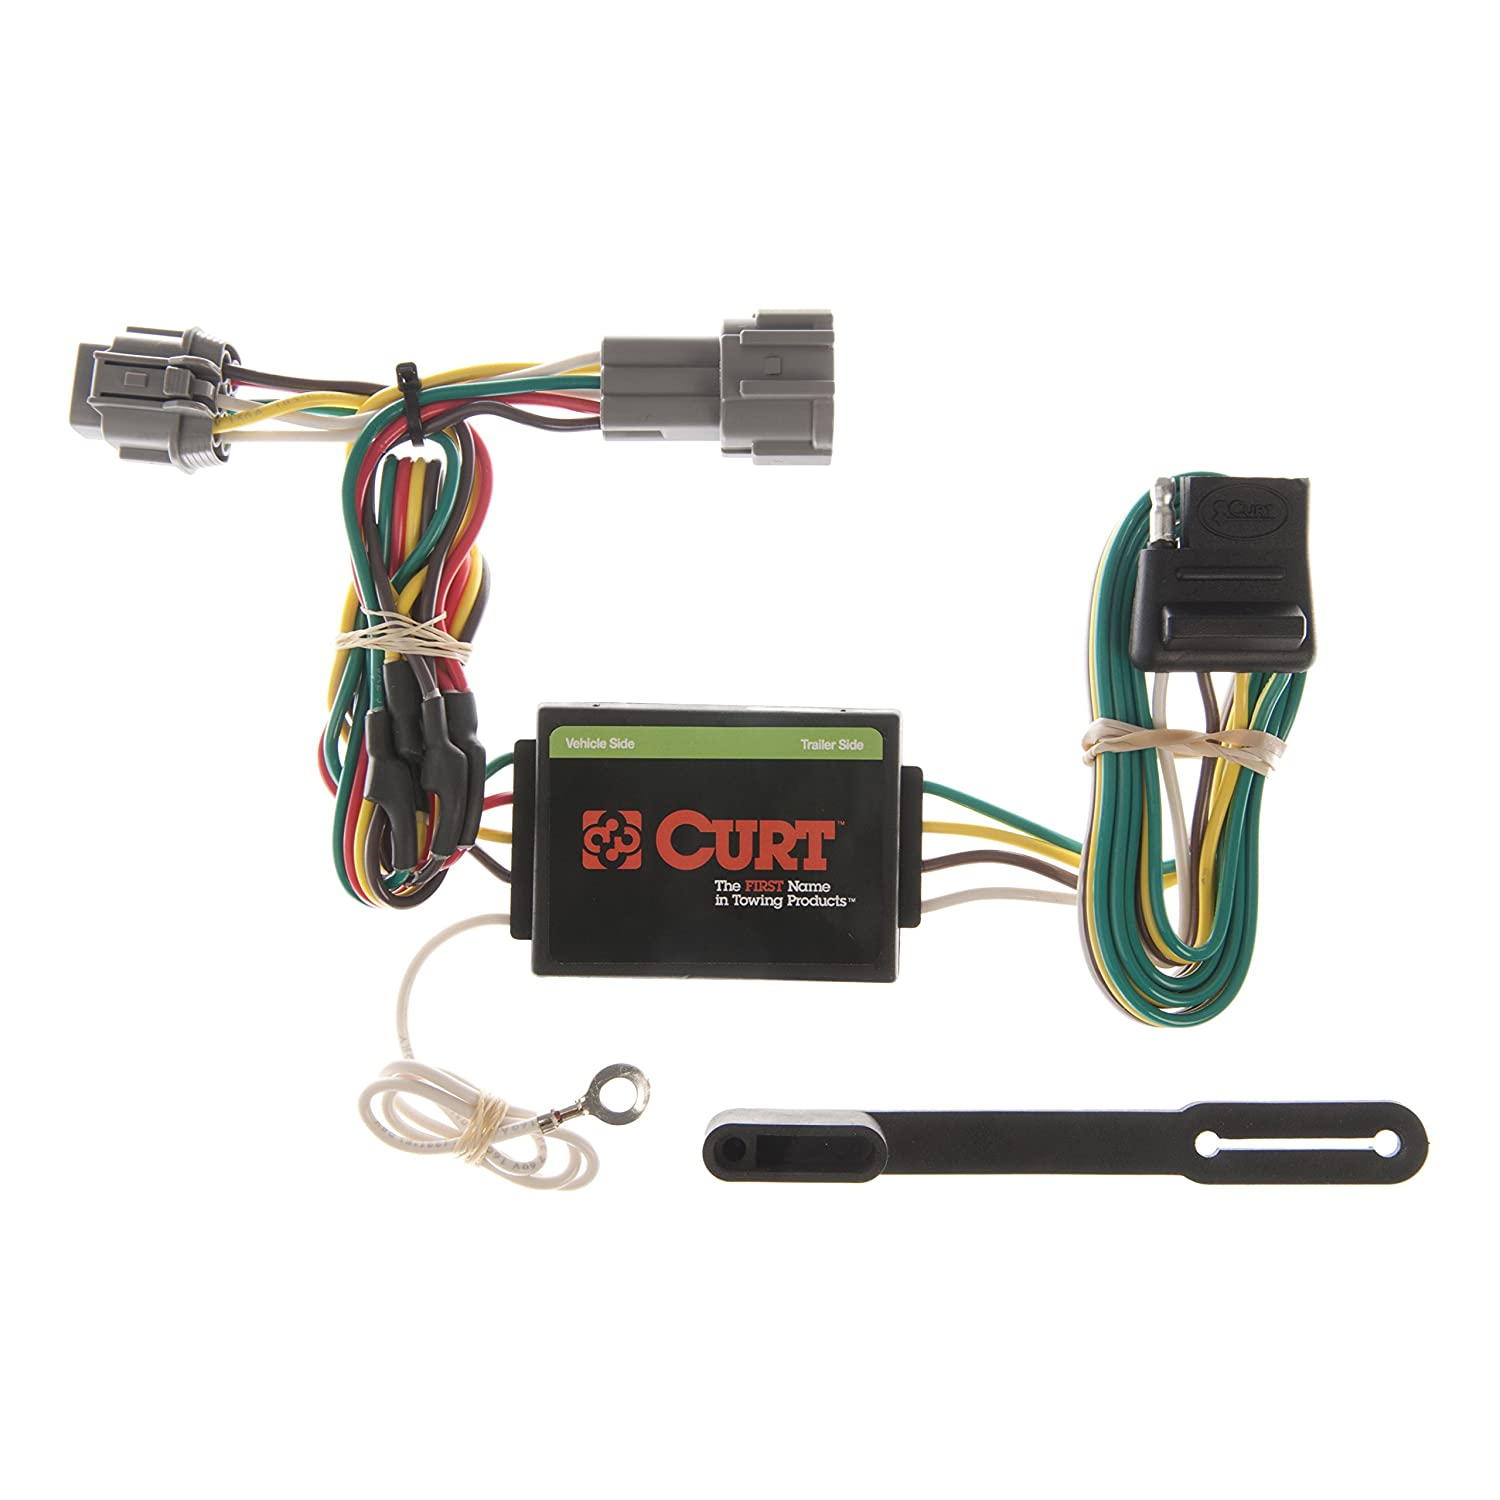 curt 55362 vehicle side custom 4 pin trailer wiring harness for select nissan frontier, quest, mercury villager Nissan Frontier Trailer Plug